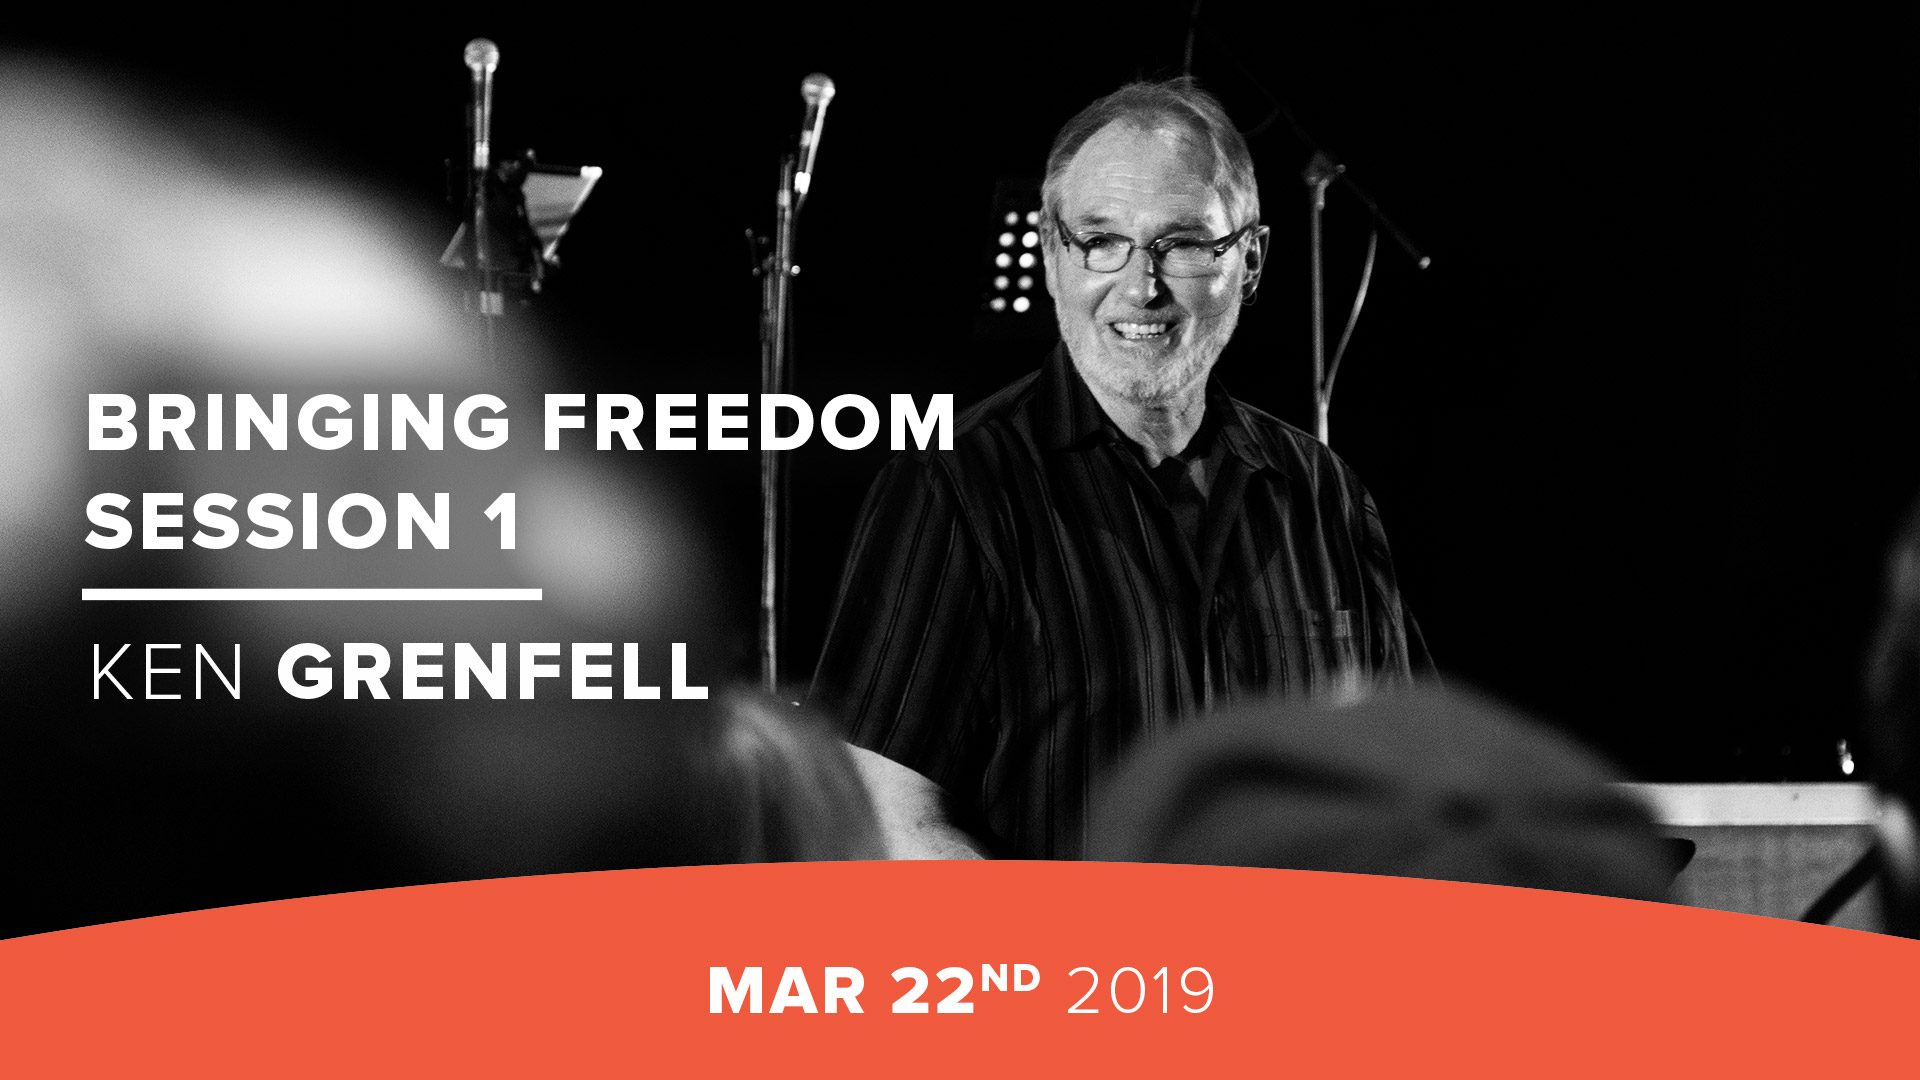 Bringing Freedom Session 1 - Ken Grenfell